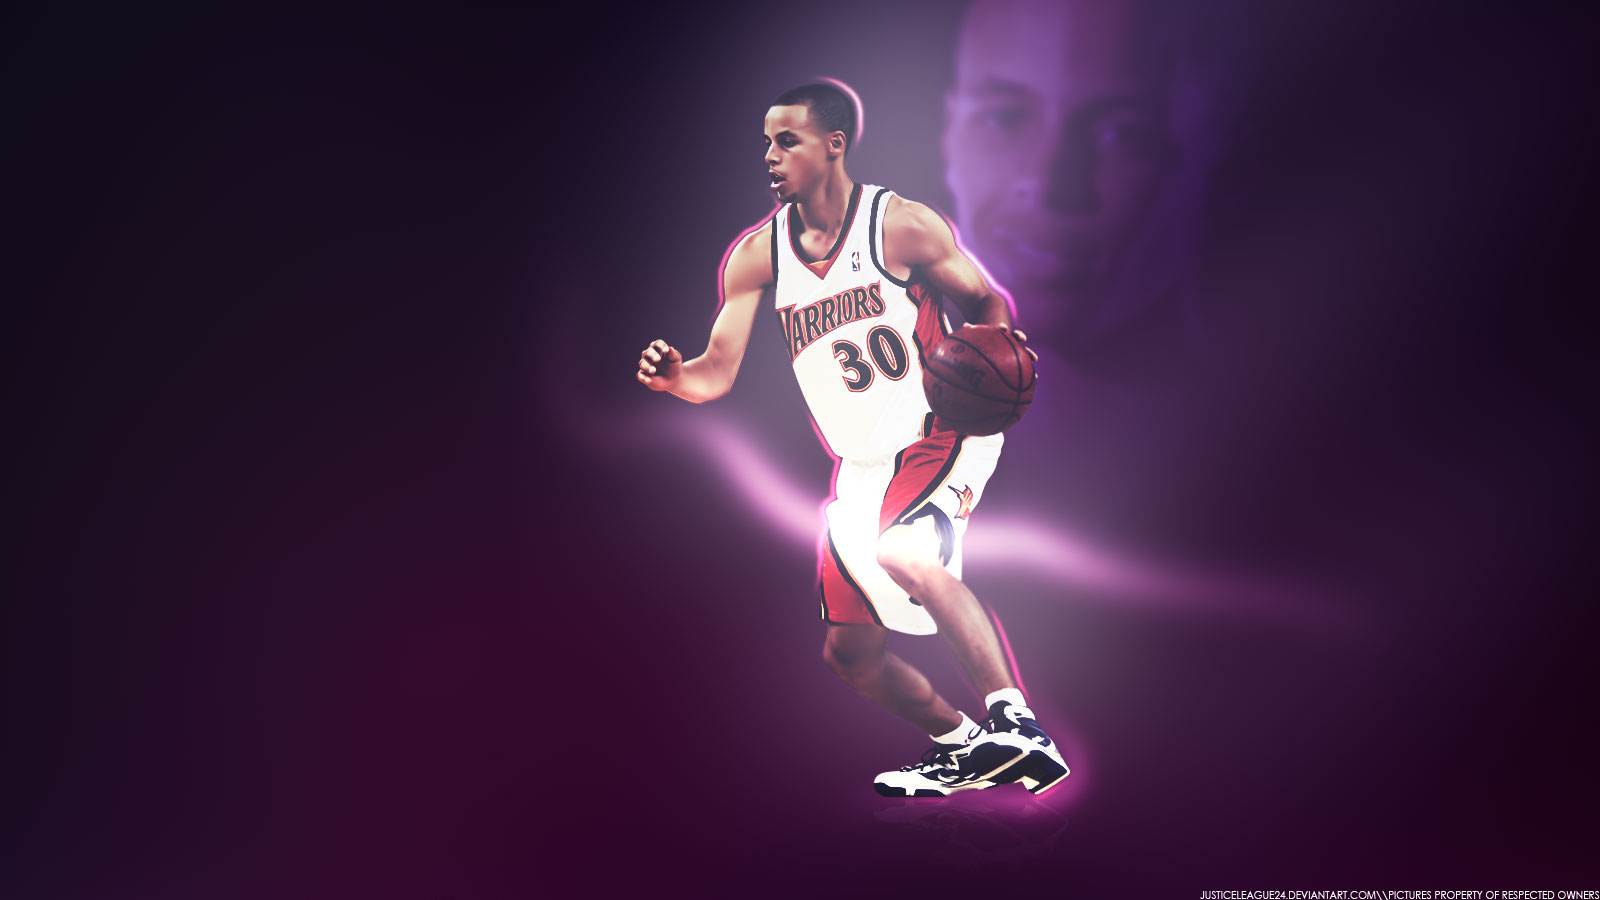 Amazing Wallpaper Logo Stephen Curry - Stephen-Curry-Widescreen-Wallpaper  You Should Have_222771.jpg